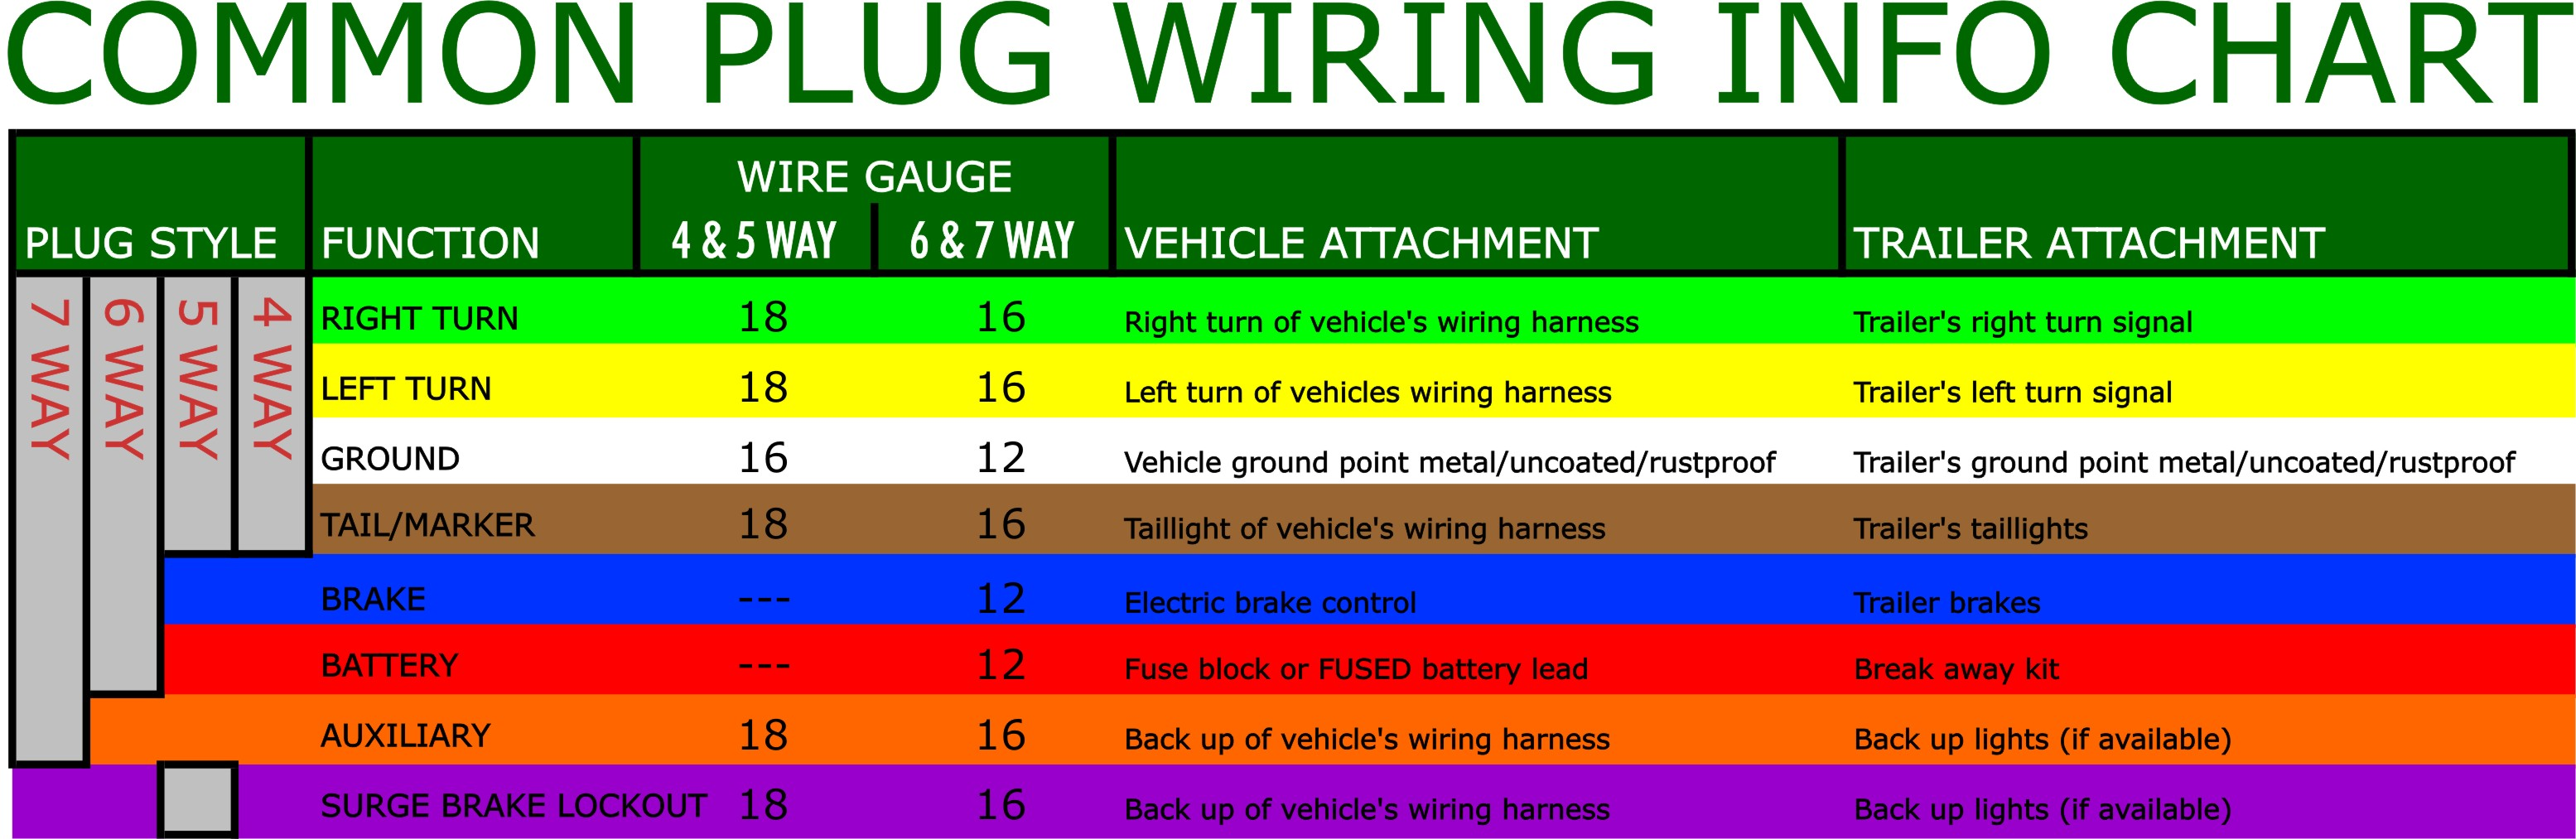 What Are The Most Common Trailer Plugs? 6 Way Trailer Lights 6 Way Trailer Wiring  Harness